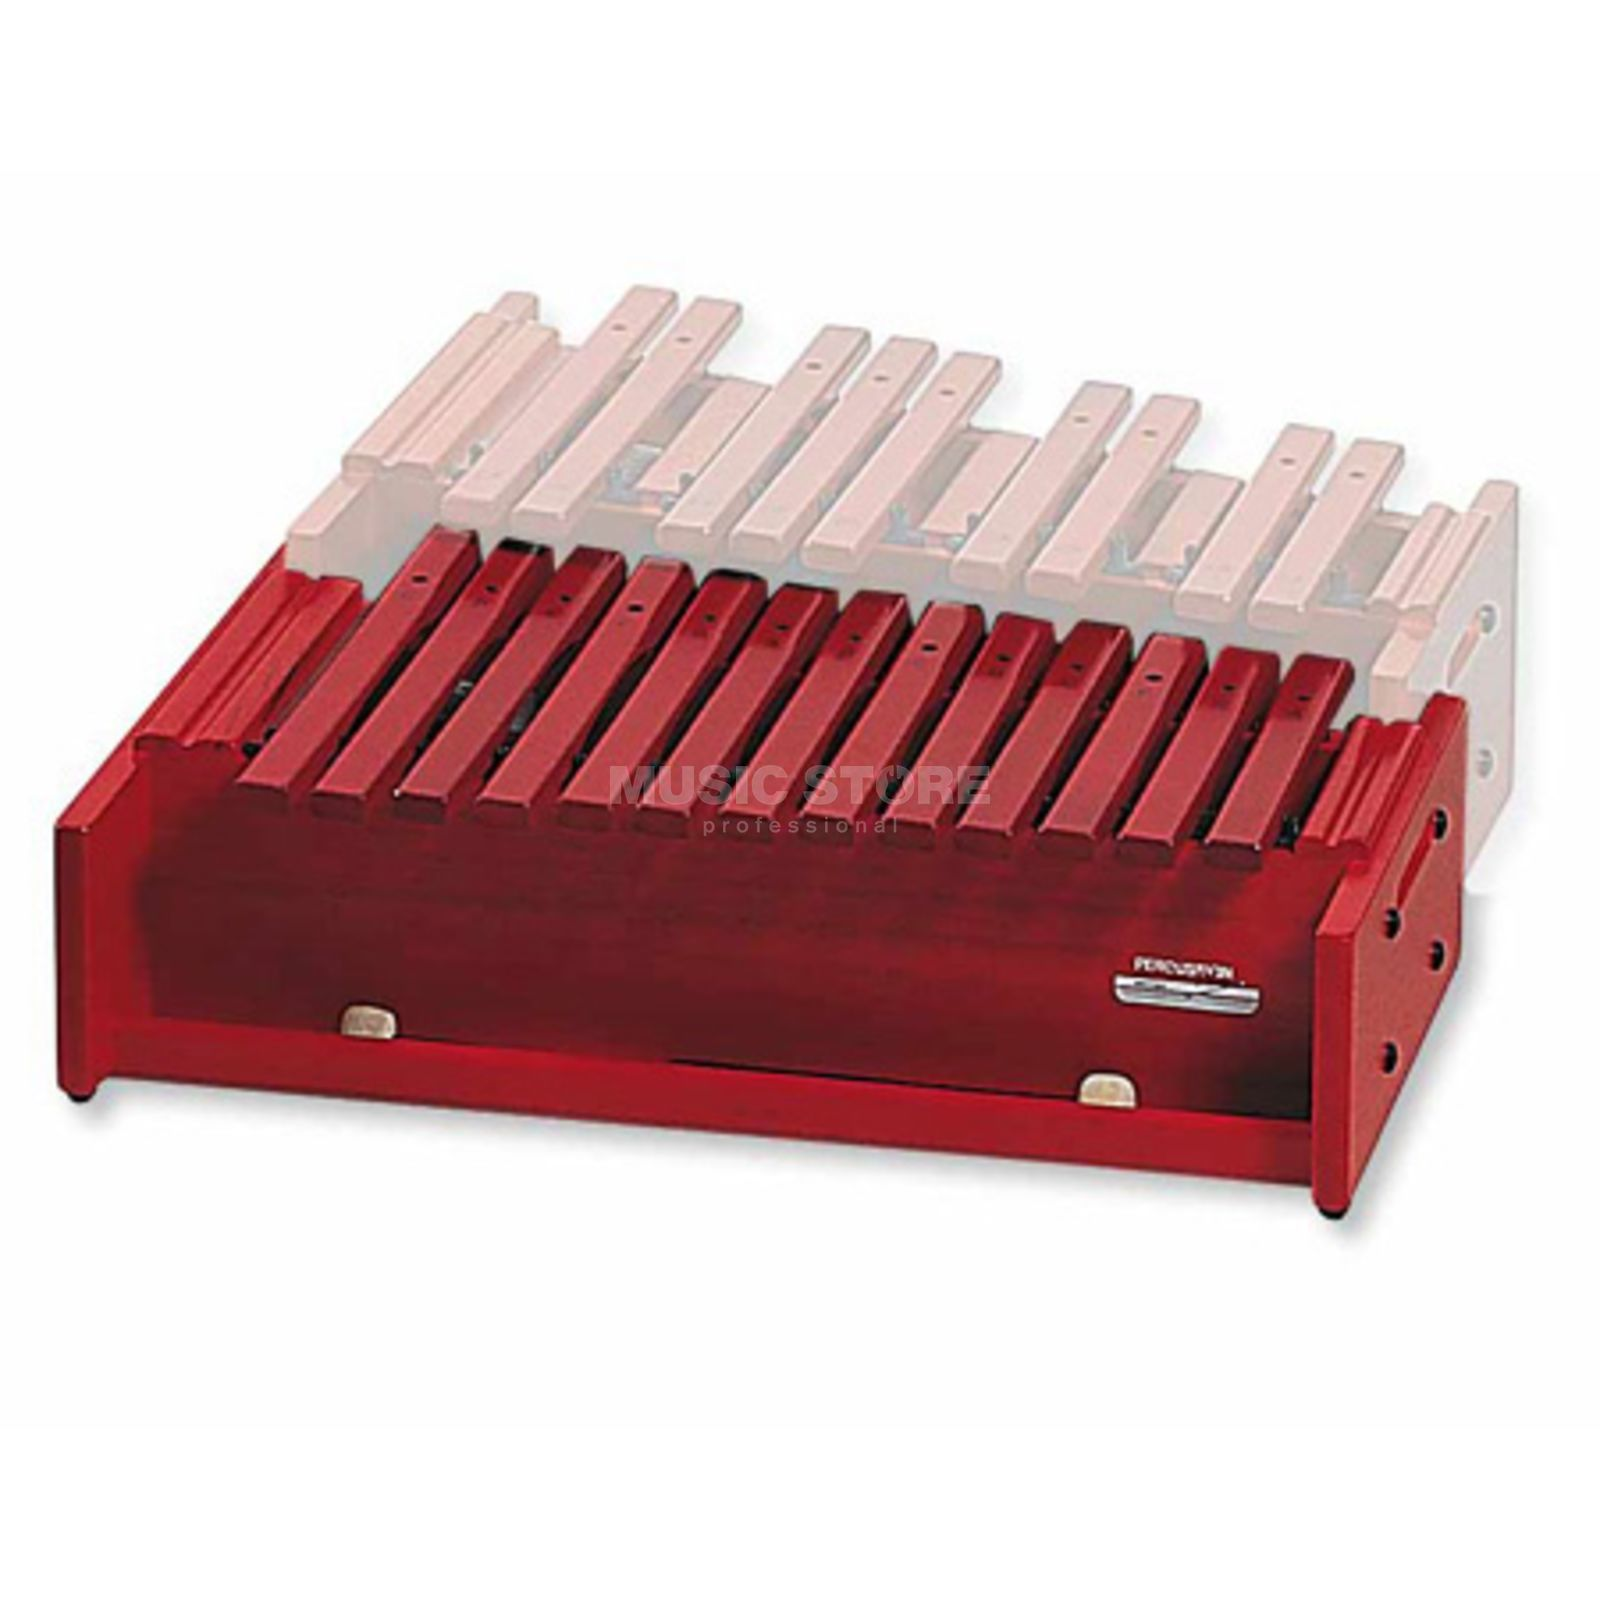 Percussion Plus PP025 Alto Xylophone, diatonic Product Image